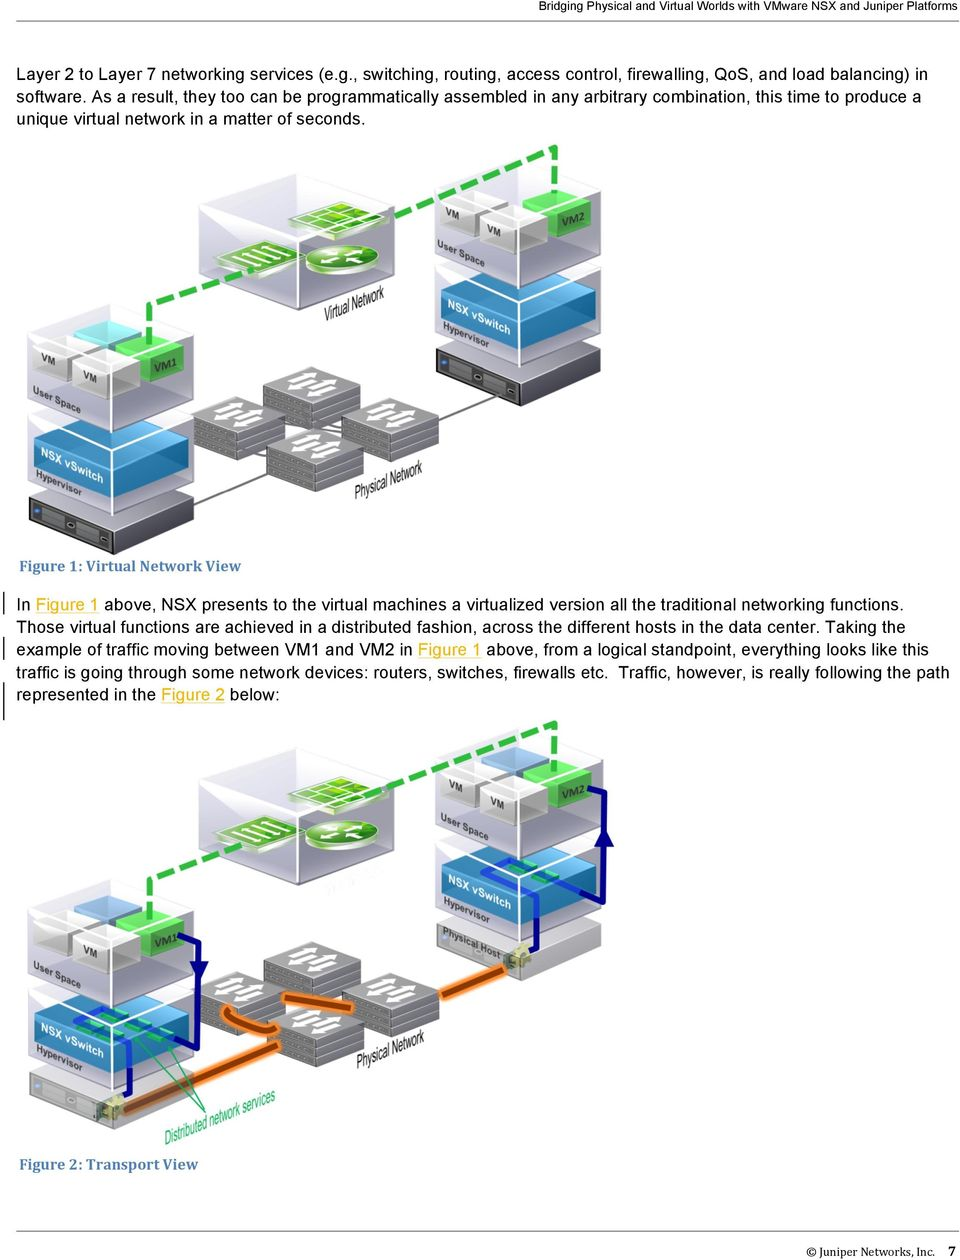 Figure 1: Virtual Network View In Figure 1 above, NSX presents to the virtual machines a virtualized version all the traditional networking functions.